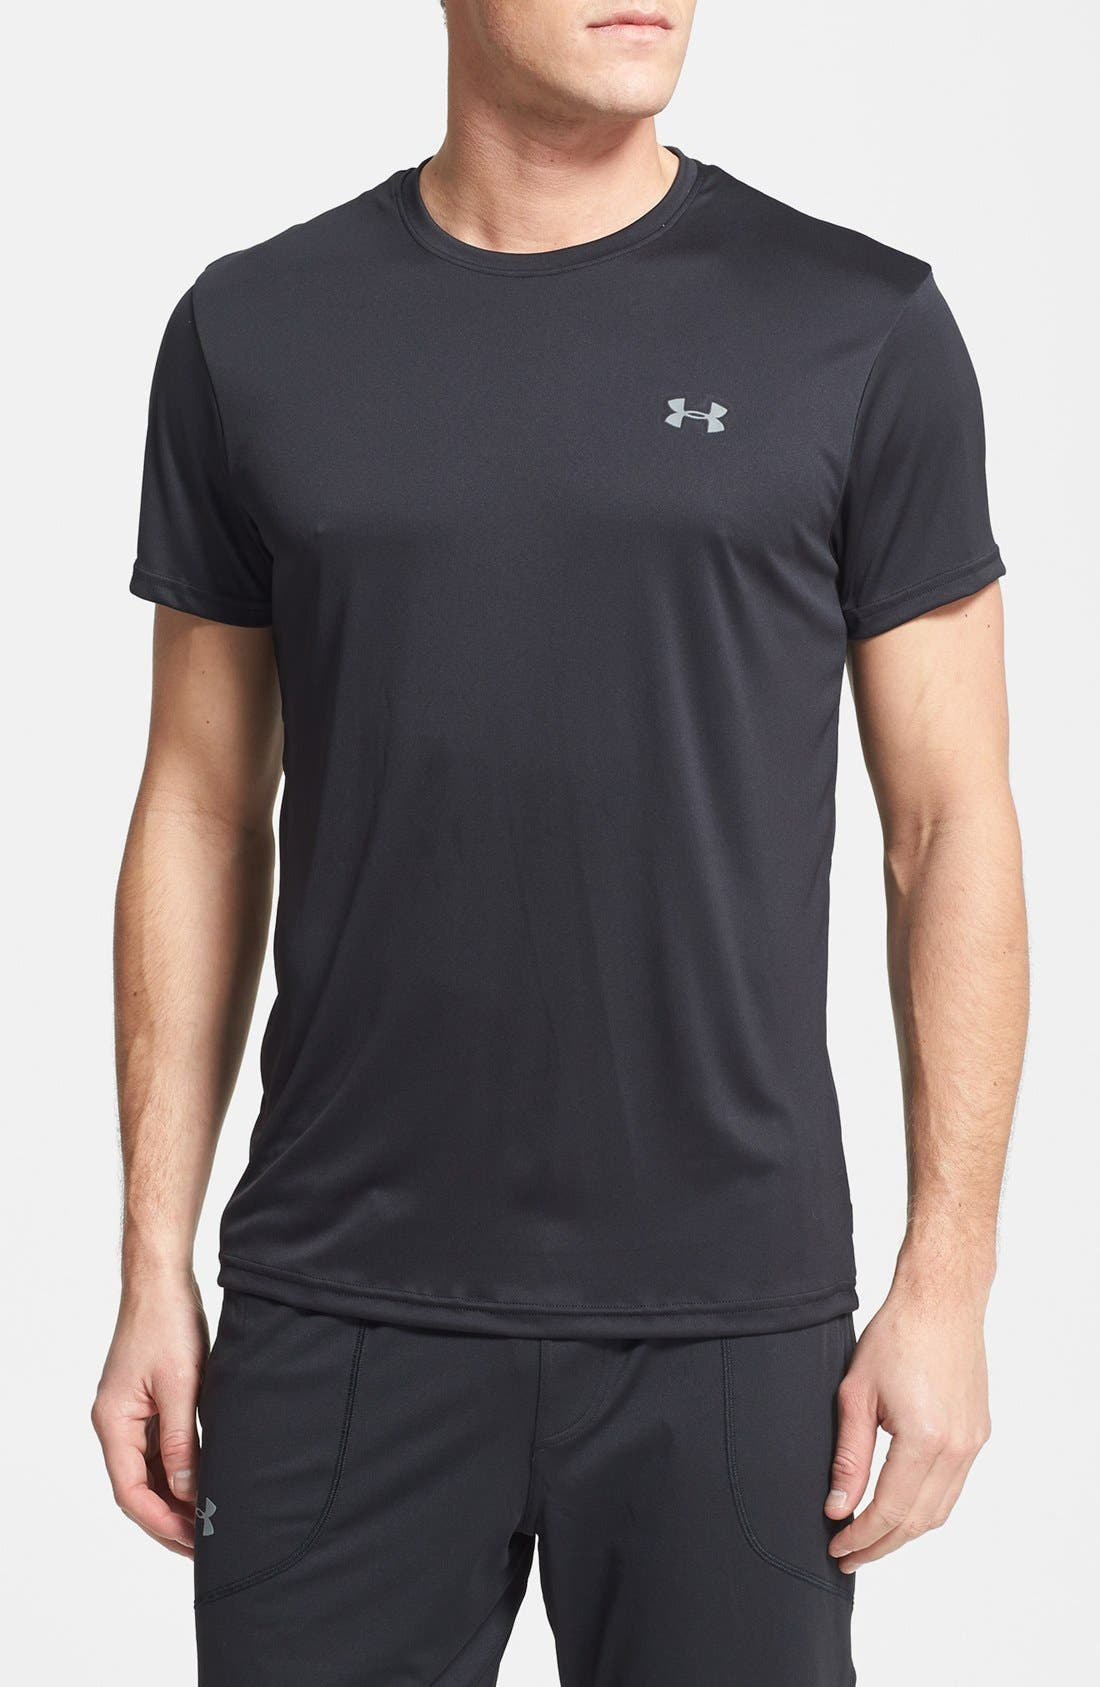 Alternate Image 1 Selected - Under Armour Crewneck HeatGear® T-Shirt (2-Pack)